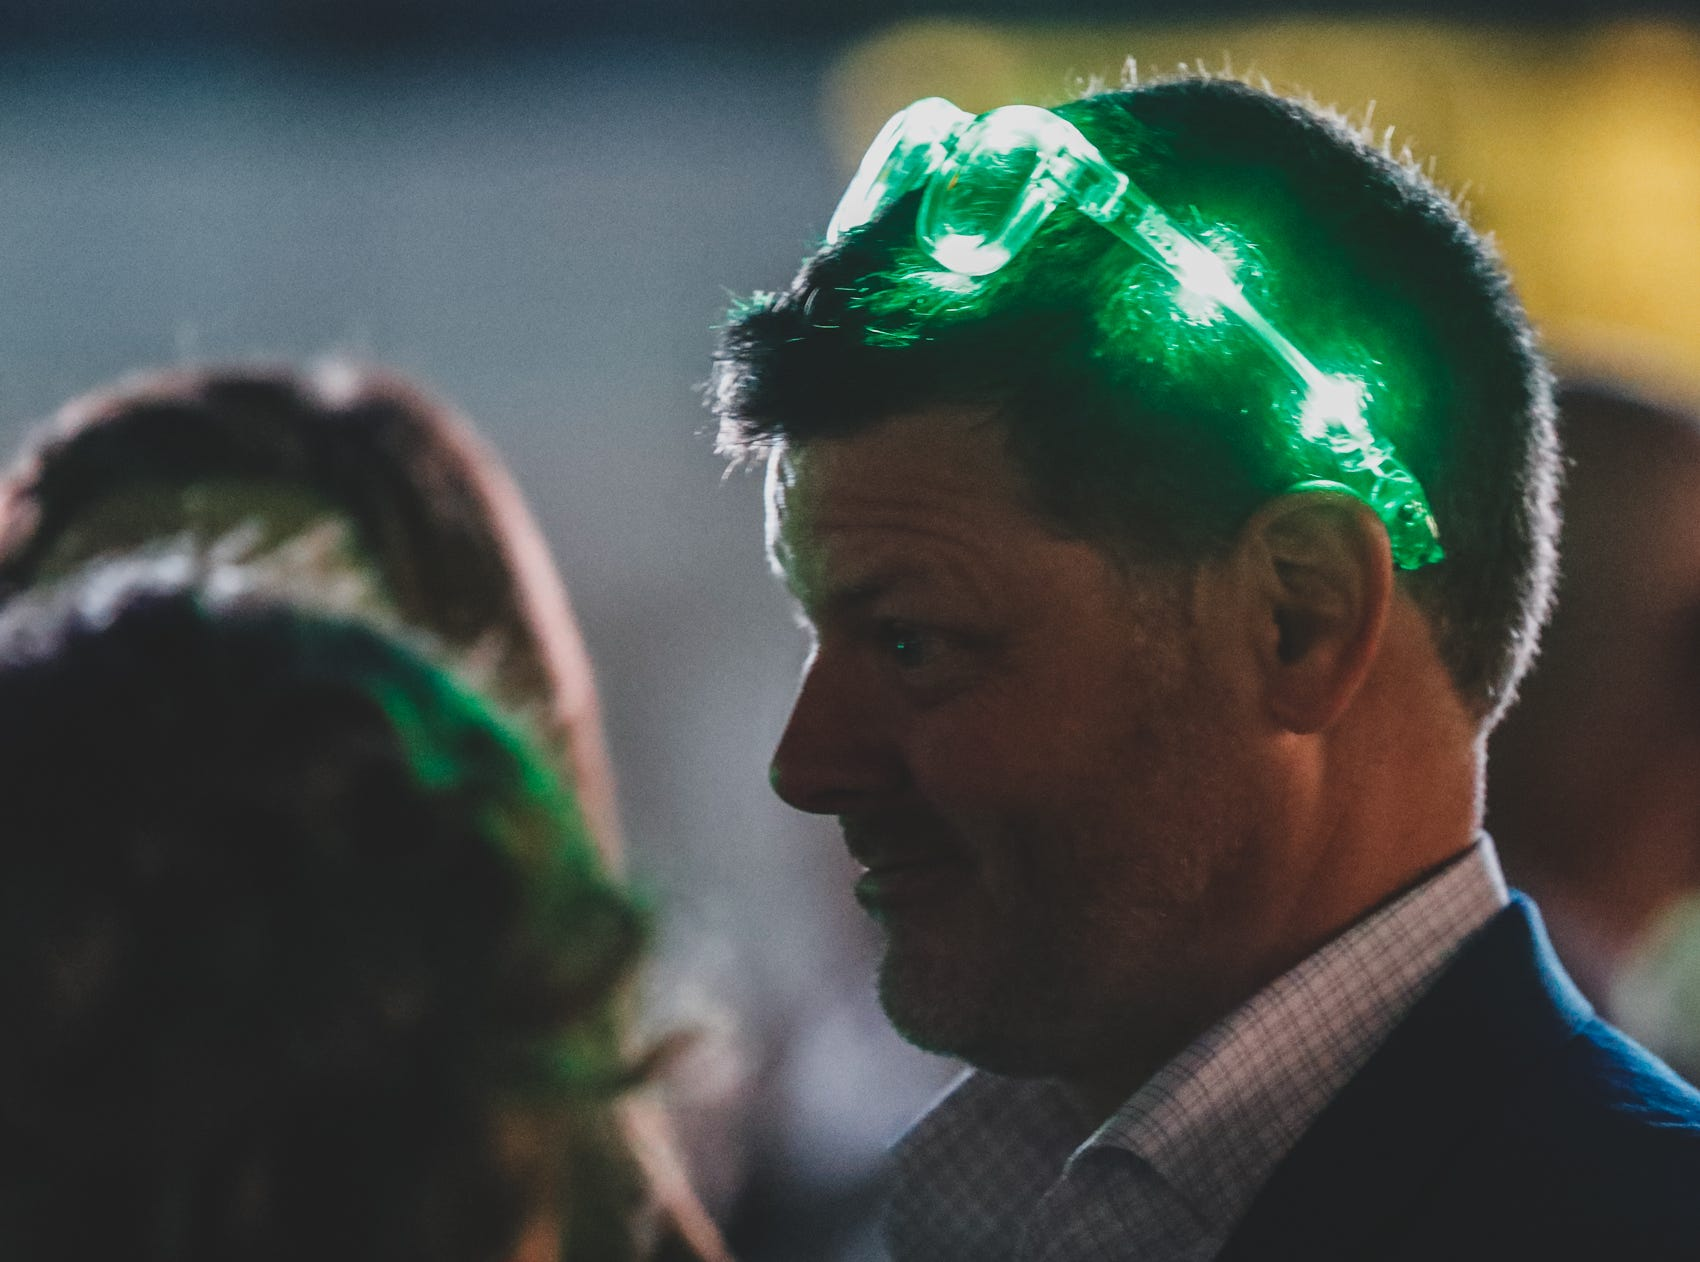 Guests glow at the Rev Indy fundraiser, held at the Indianapolis Motor Speedway on Saturday, May 4, 2019. Funds raised support the IU Health Foundation statewide and the IU Health Emergency Medical Center at IMS.